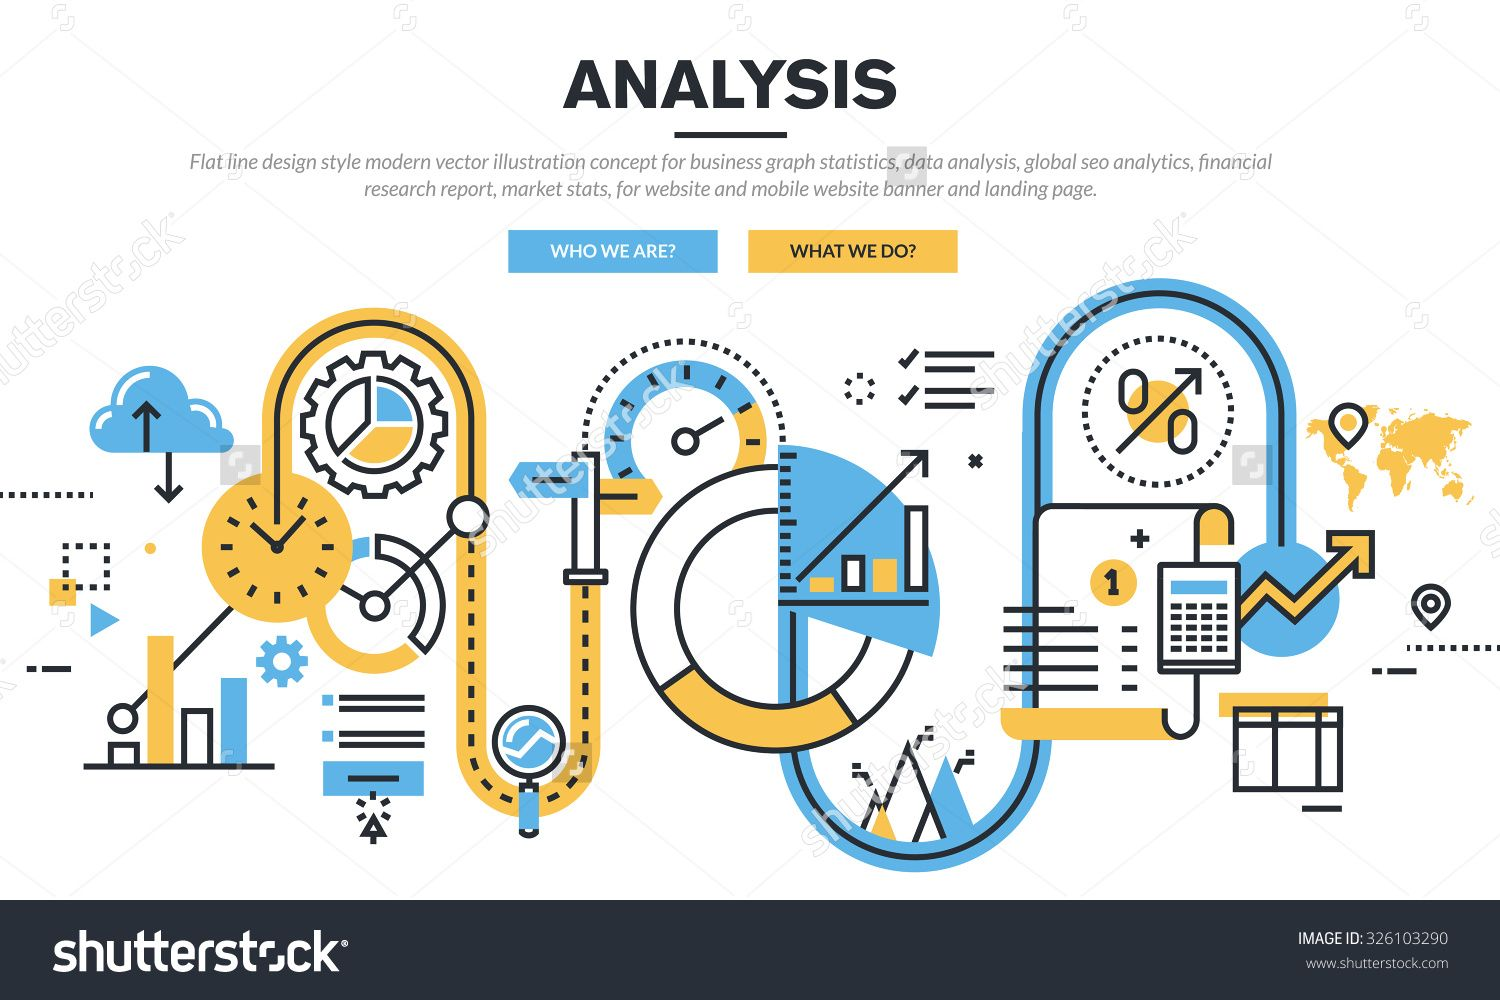 Flat Line Design Vector Illustration Concept For Business Graph